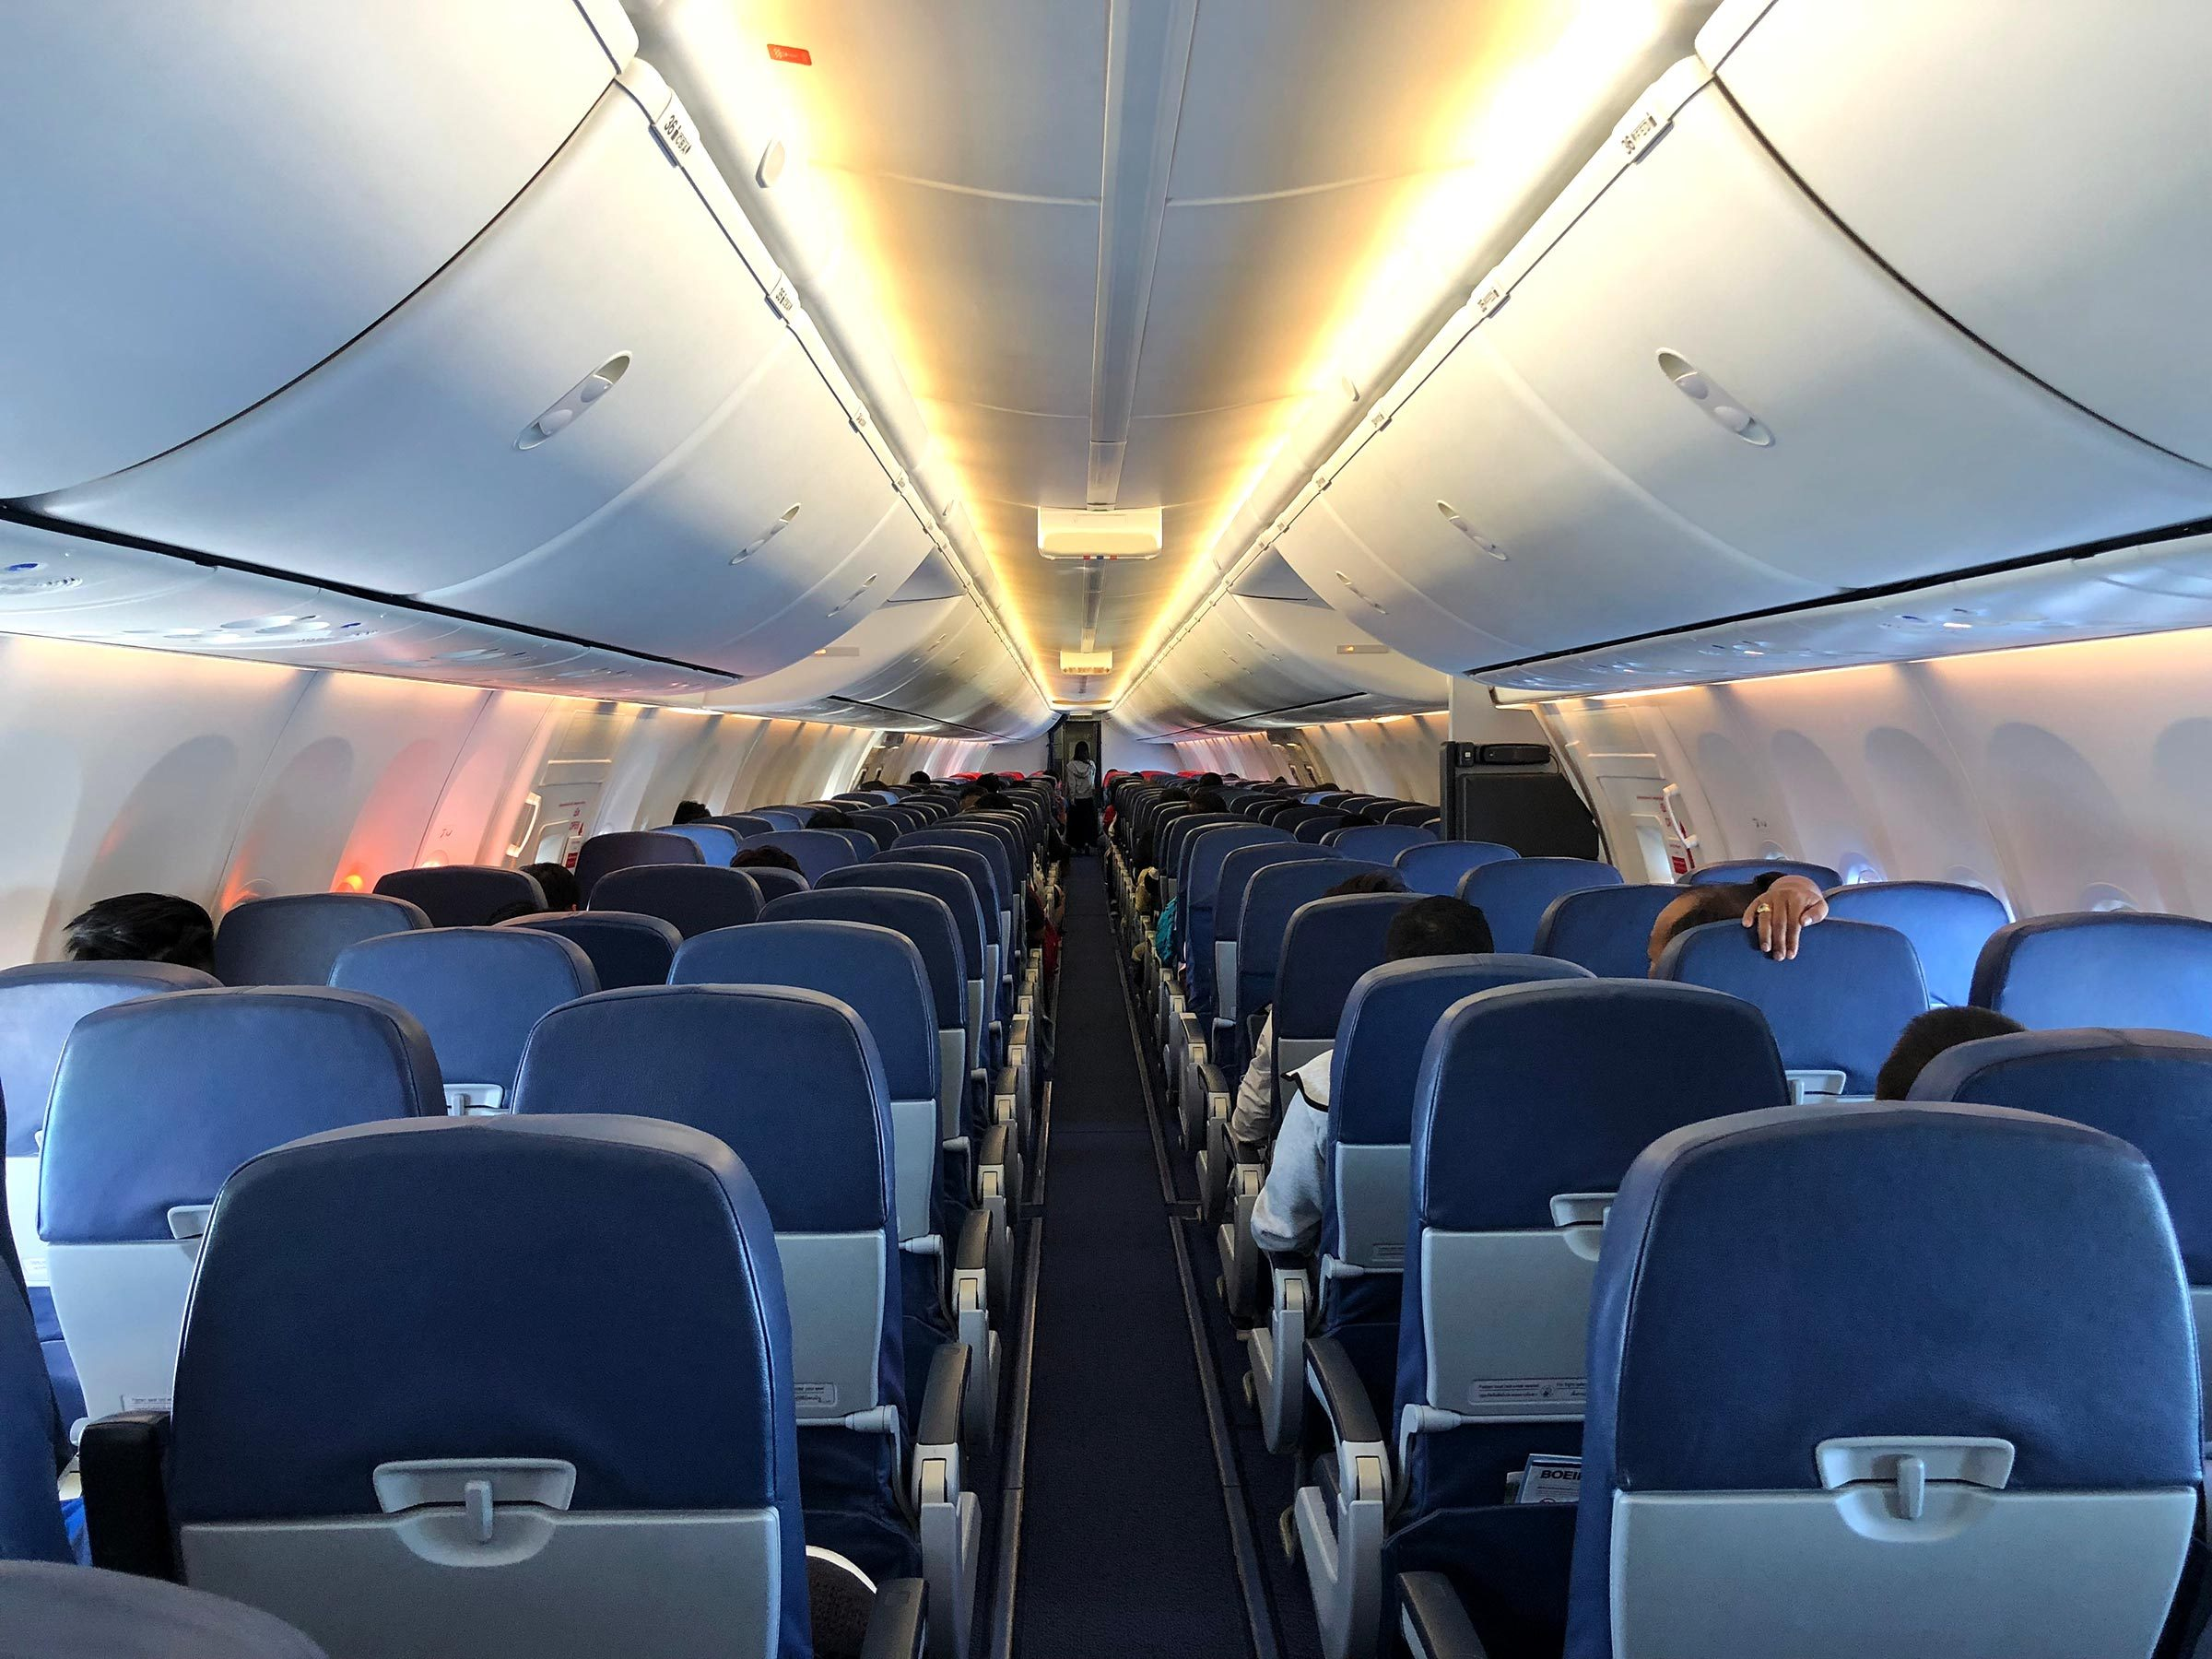 Inside the cabin of airplane with passengers